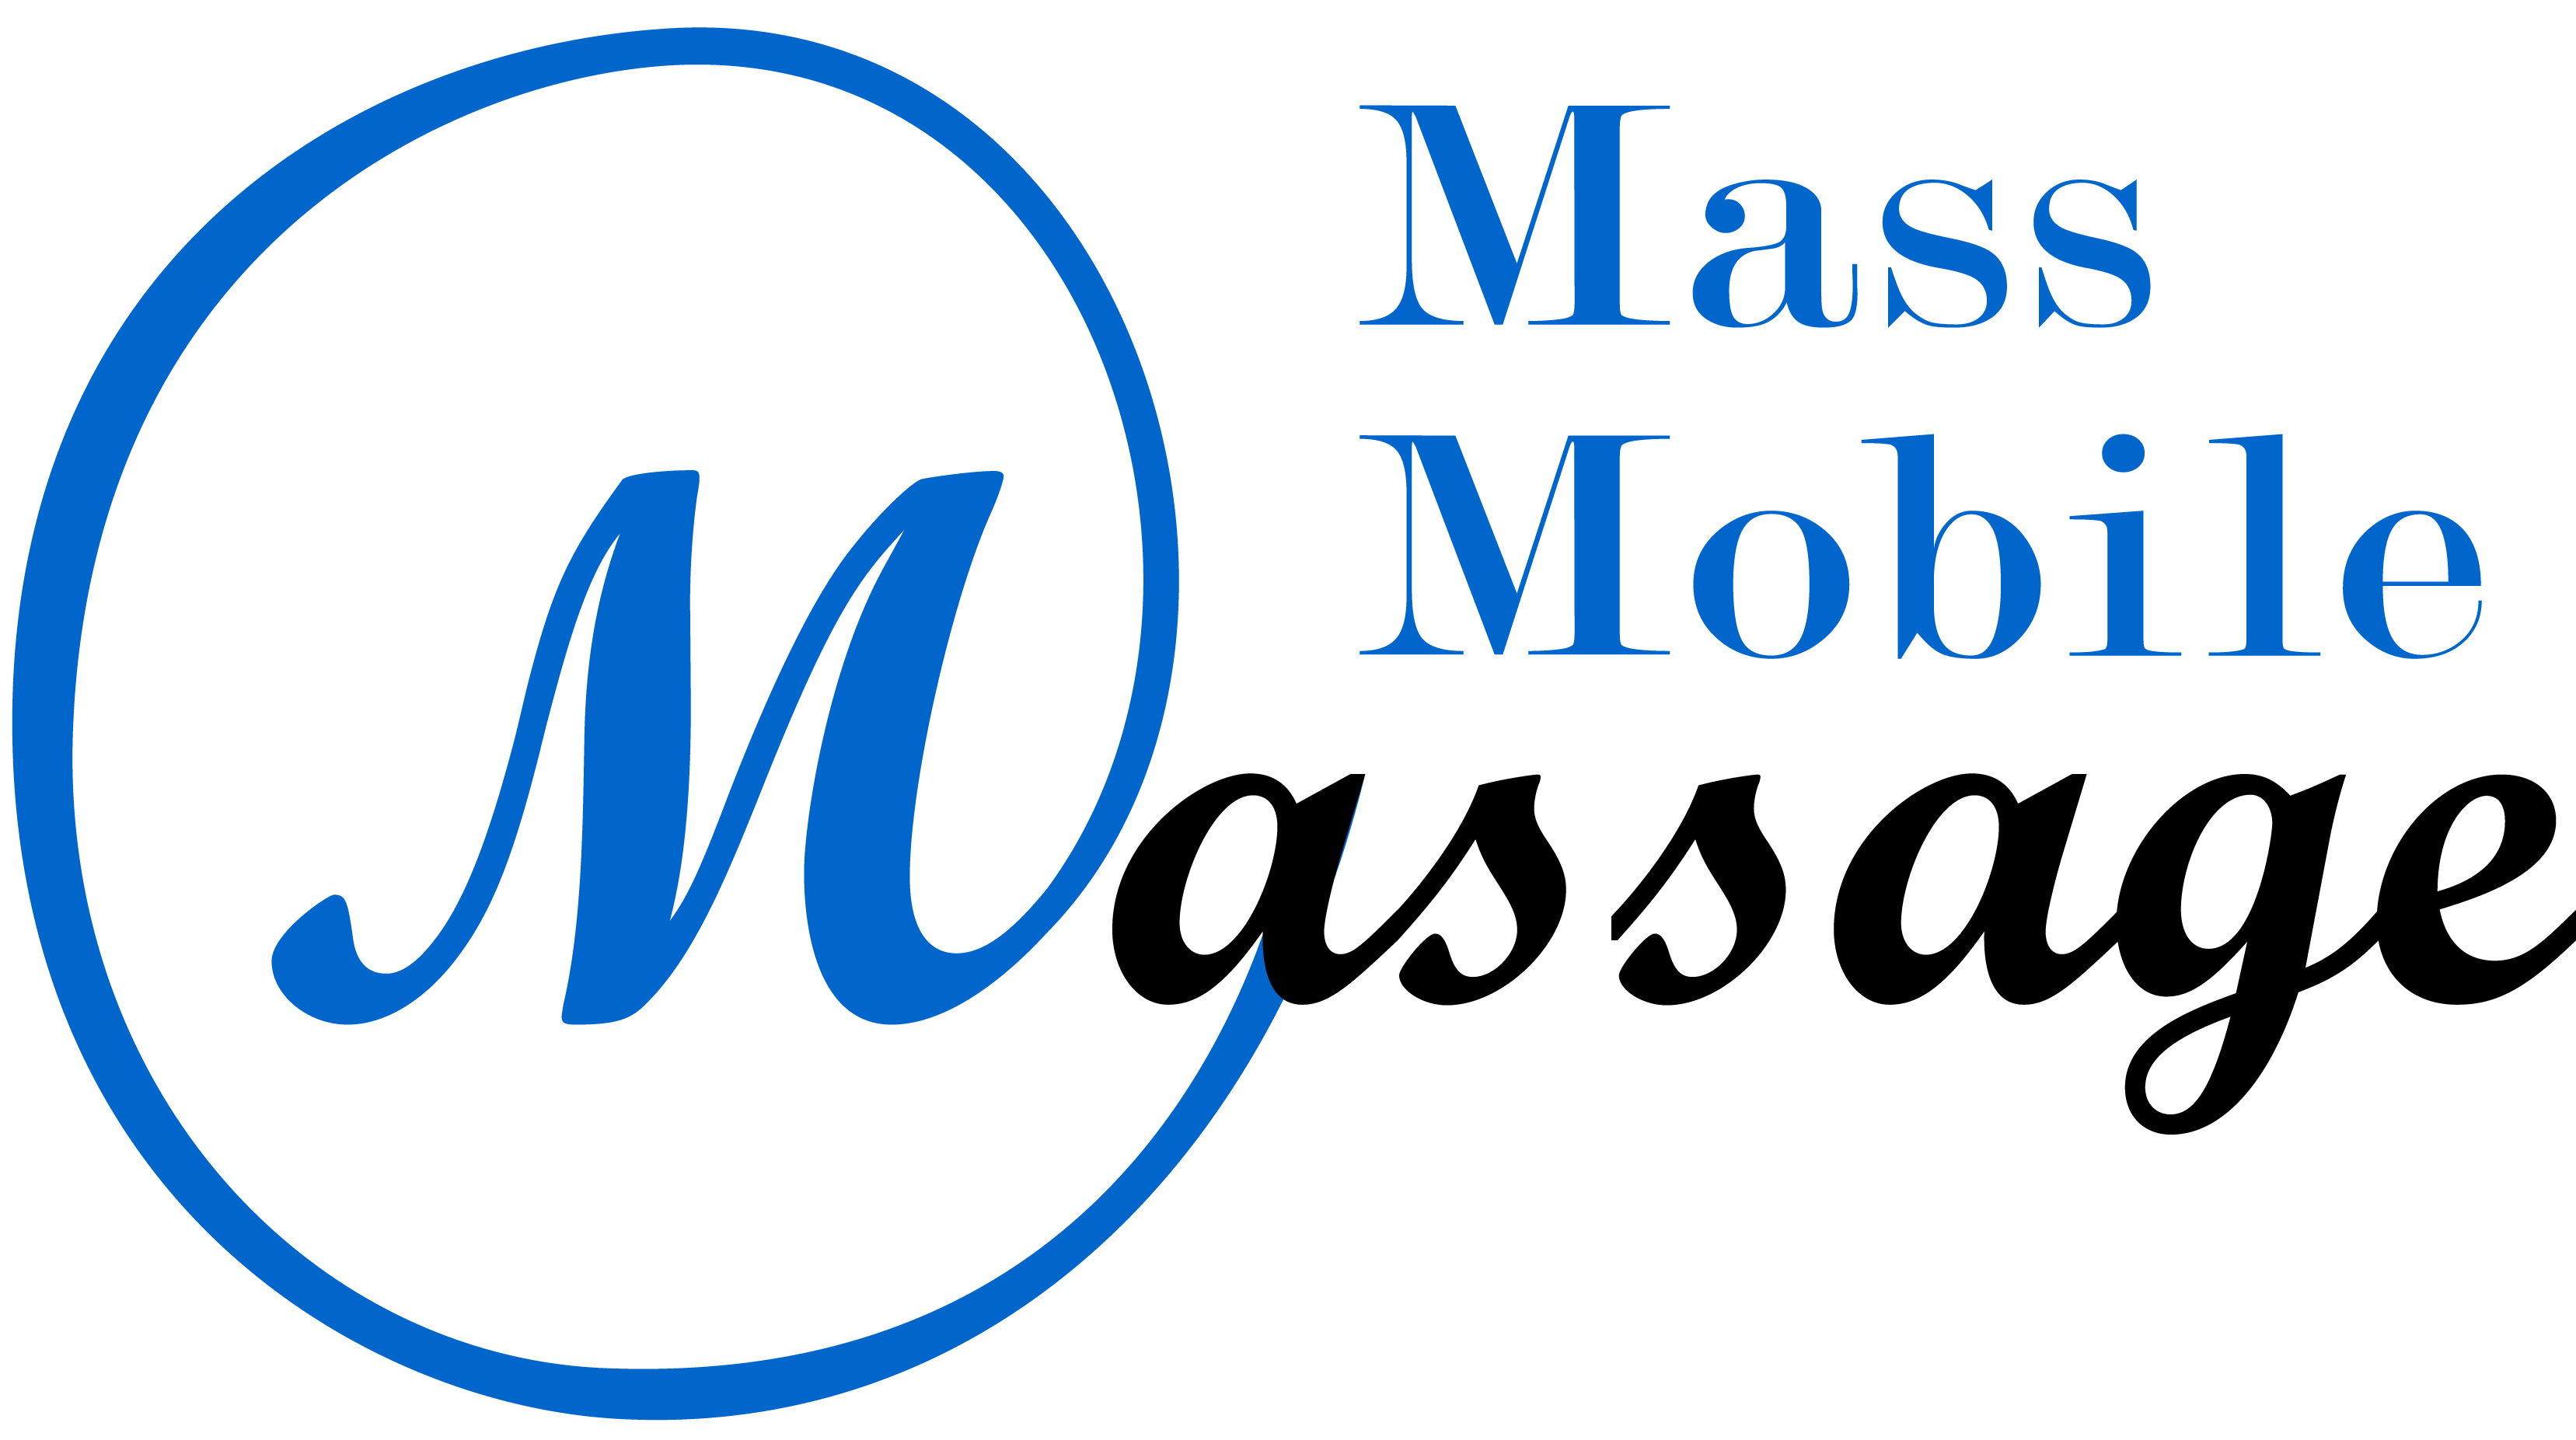 Mobile Chair Massage Service For Corporate Offices in Boston, MA Launched